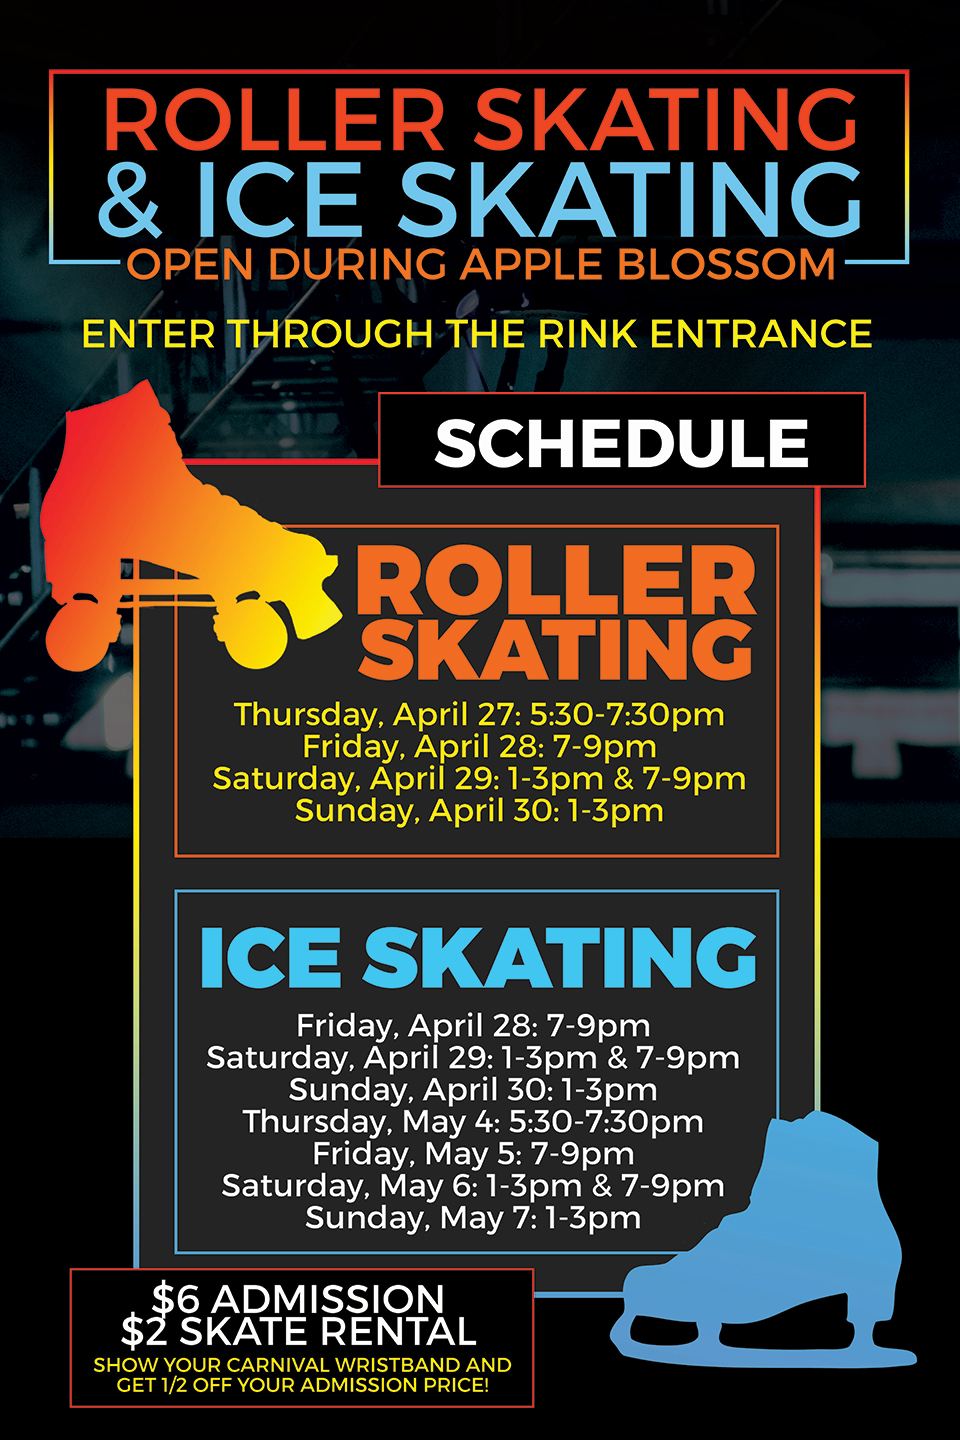 Roller-and-Ice-Skating-Schedule-Carnival-sm.jpg